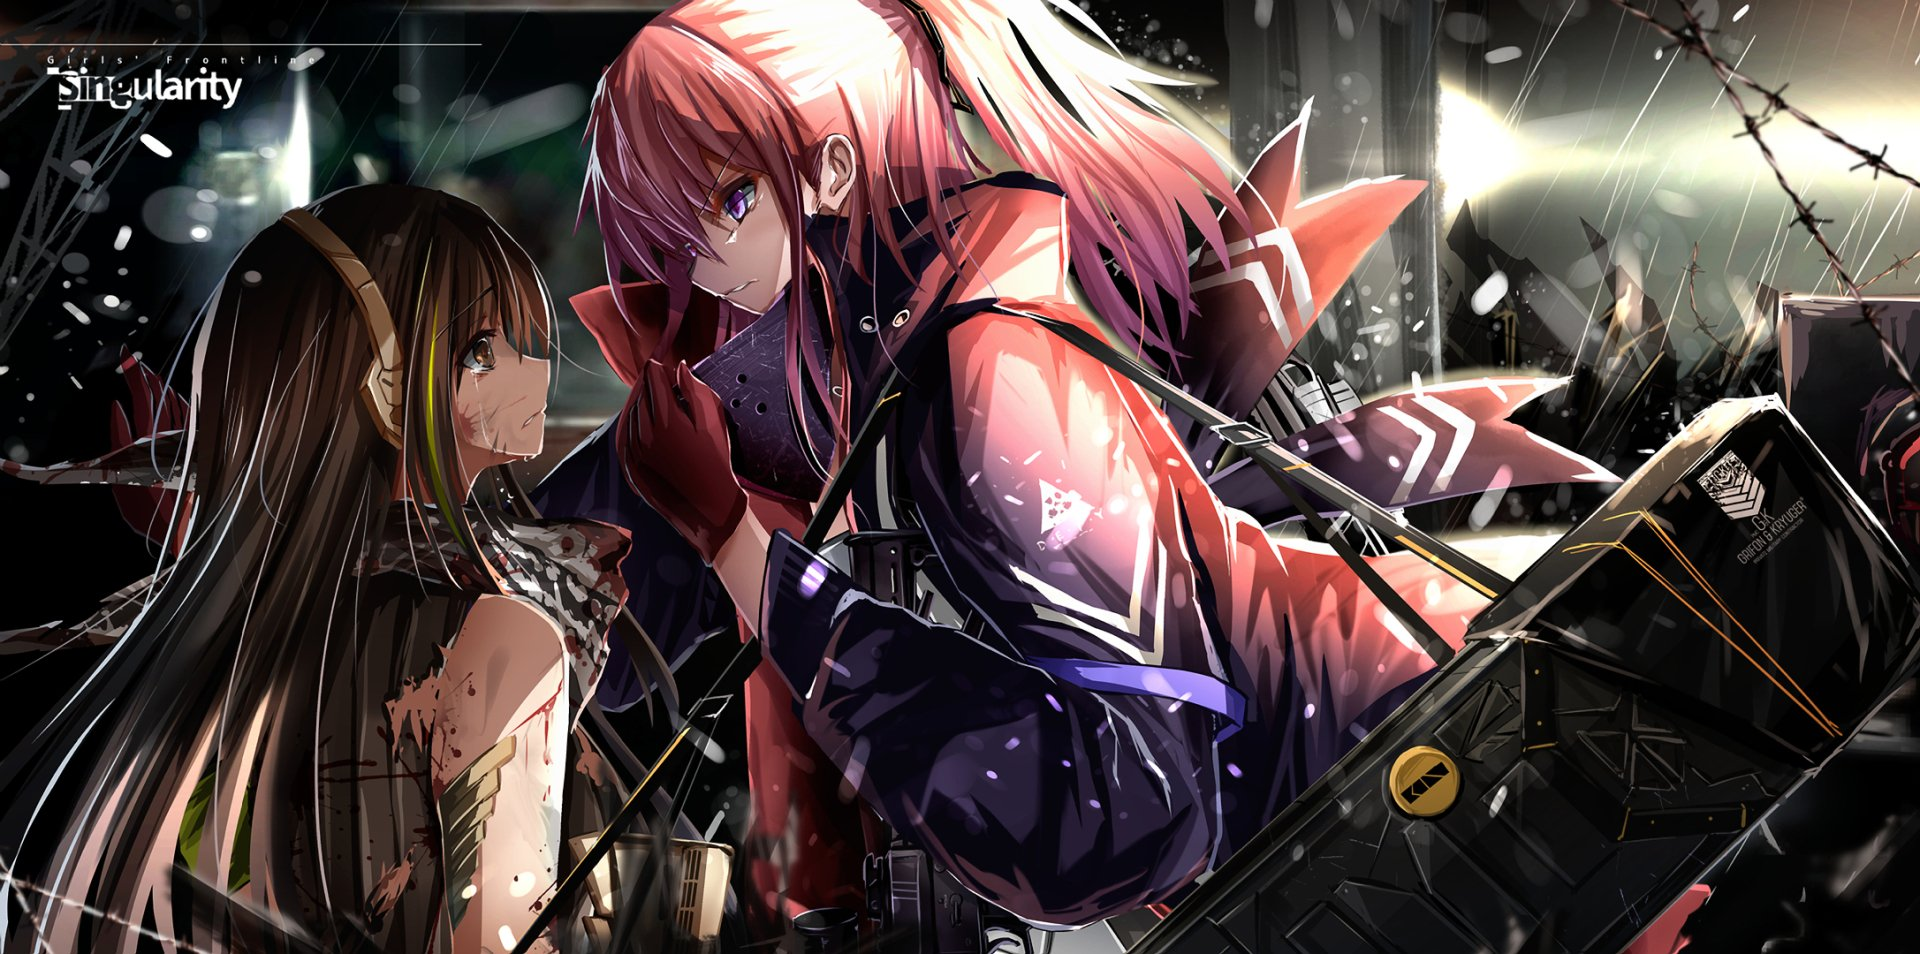 Iphone 4 Anime Girl Wallpapers 少女前线 高清壁纸 桌面背景 2173x1080 Id 911572 Wallpaper Abyss